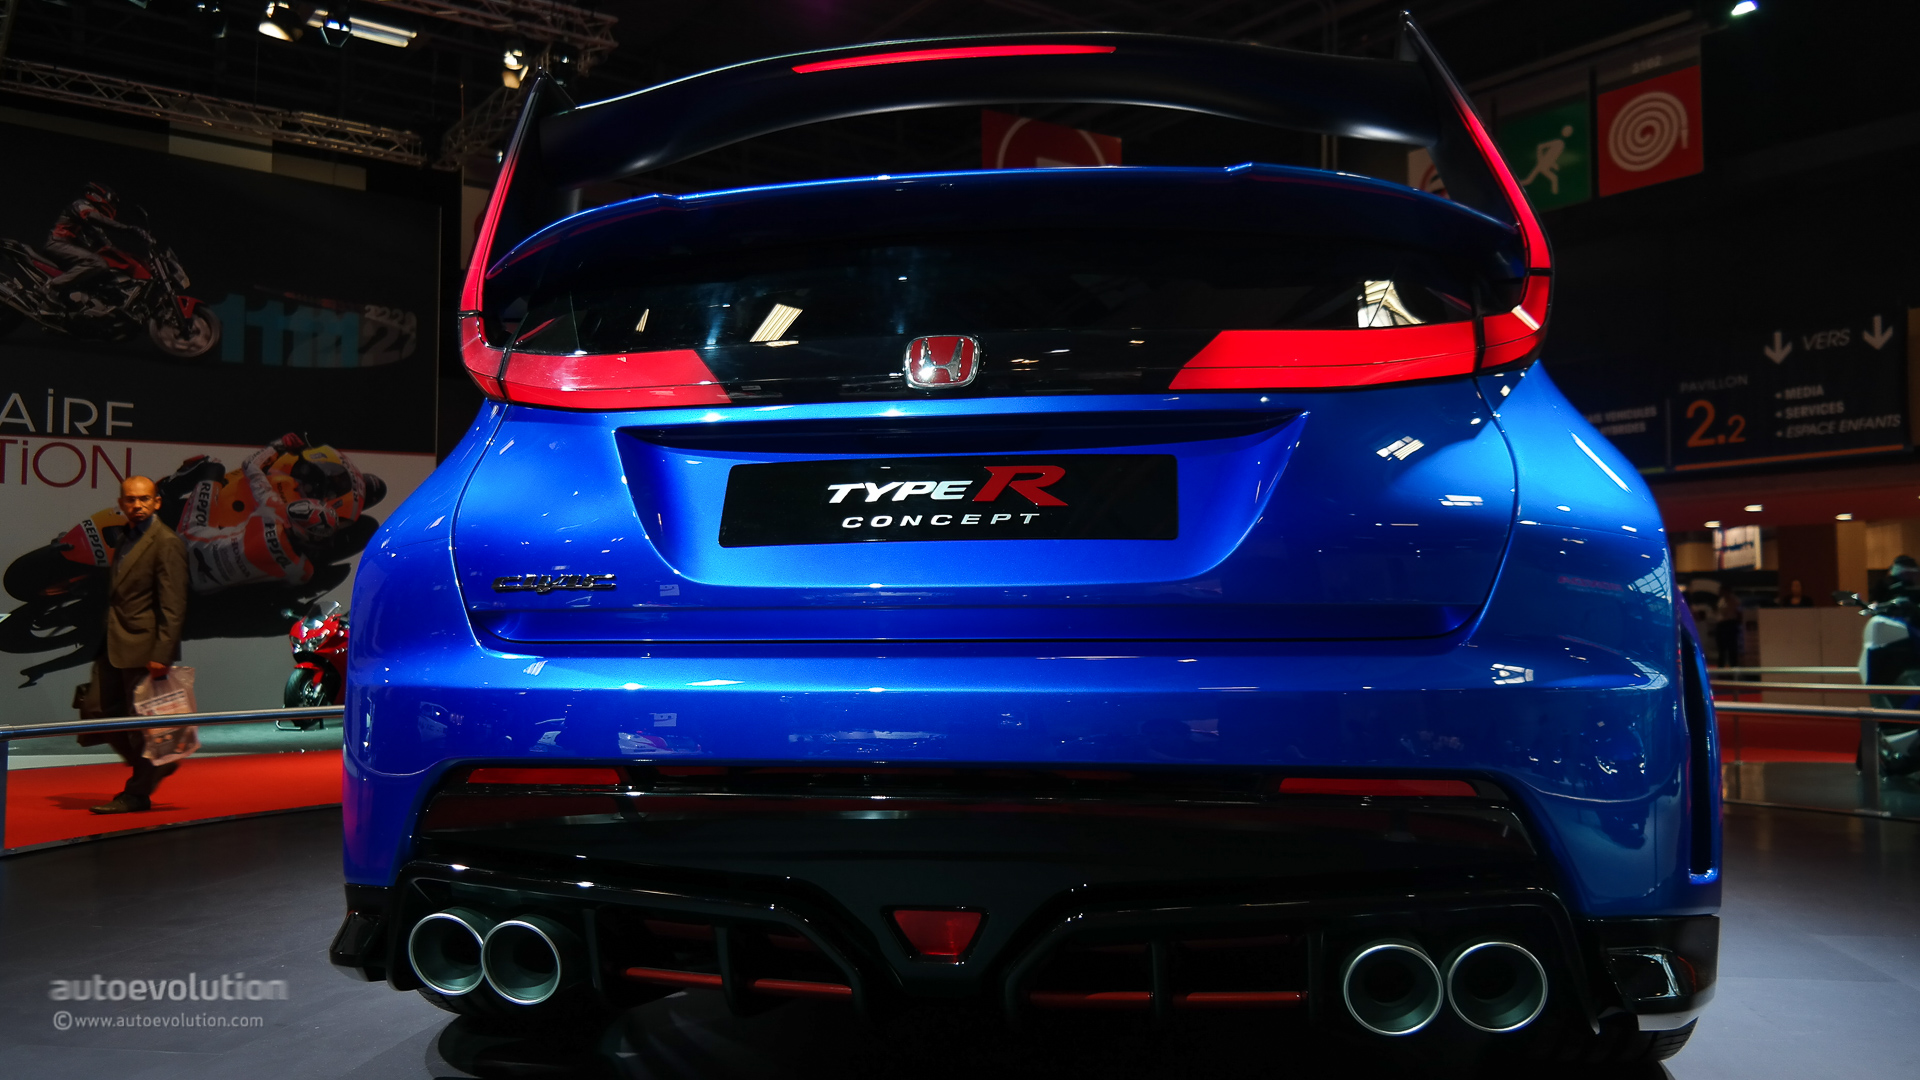 Fastest Car In The World Wallpaper 2015 Next Honda Civic Type R Coming To The Us In 2016